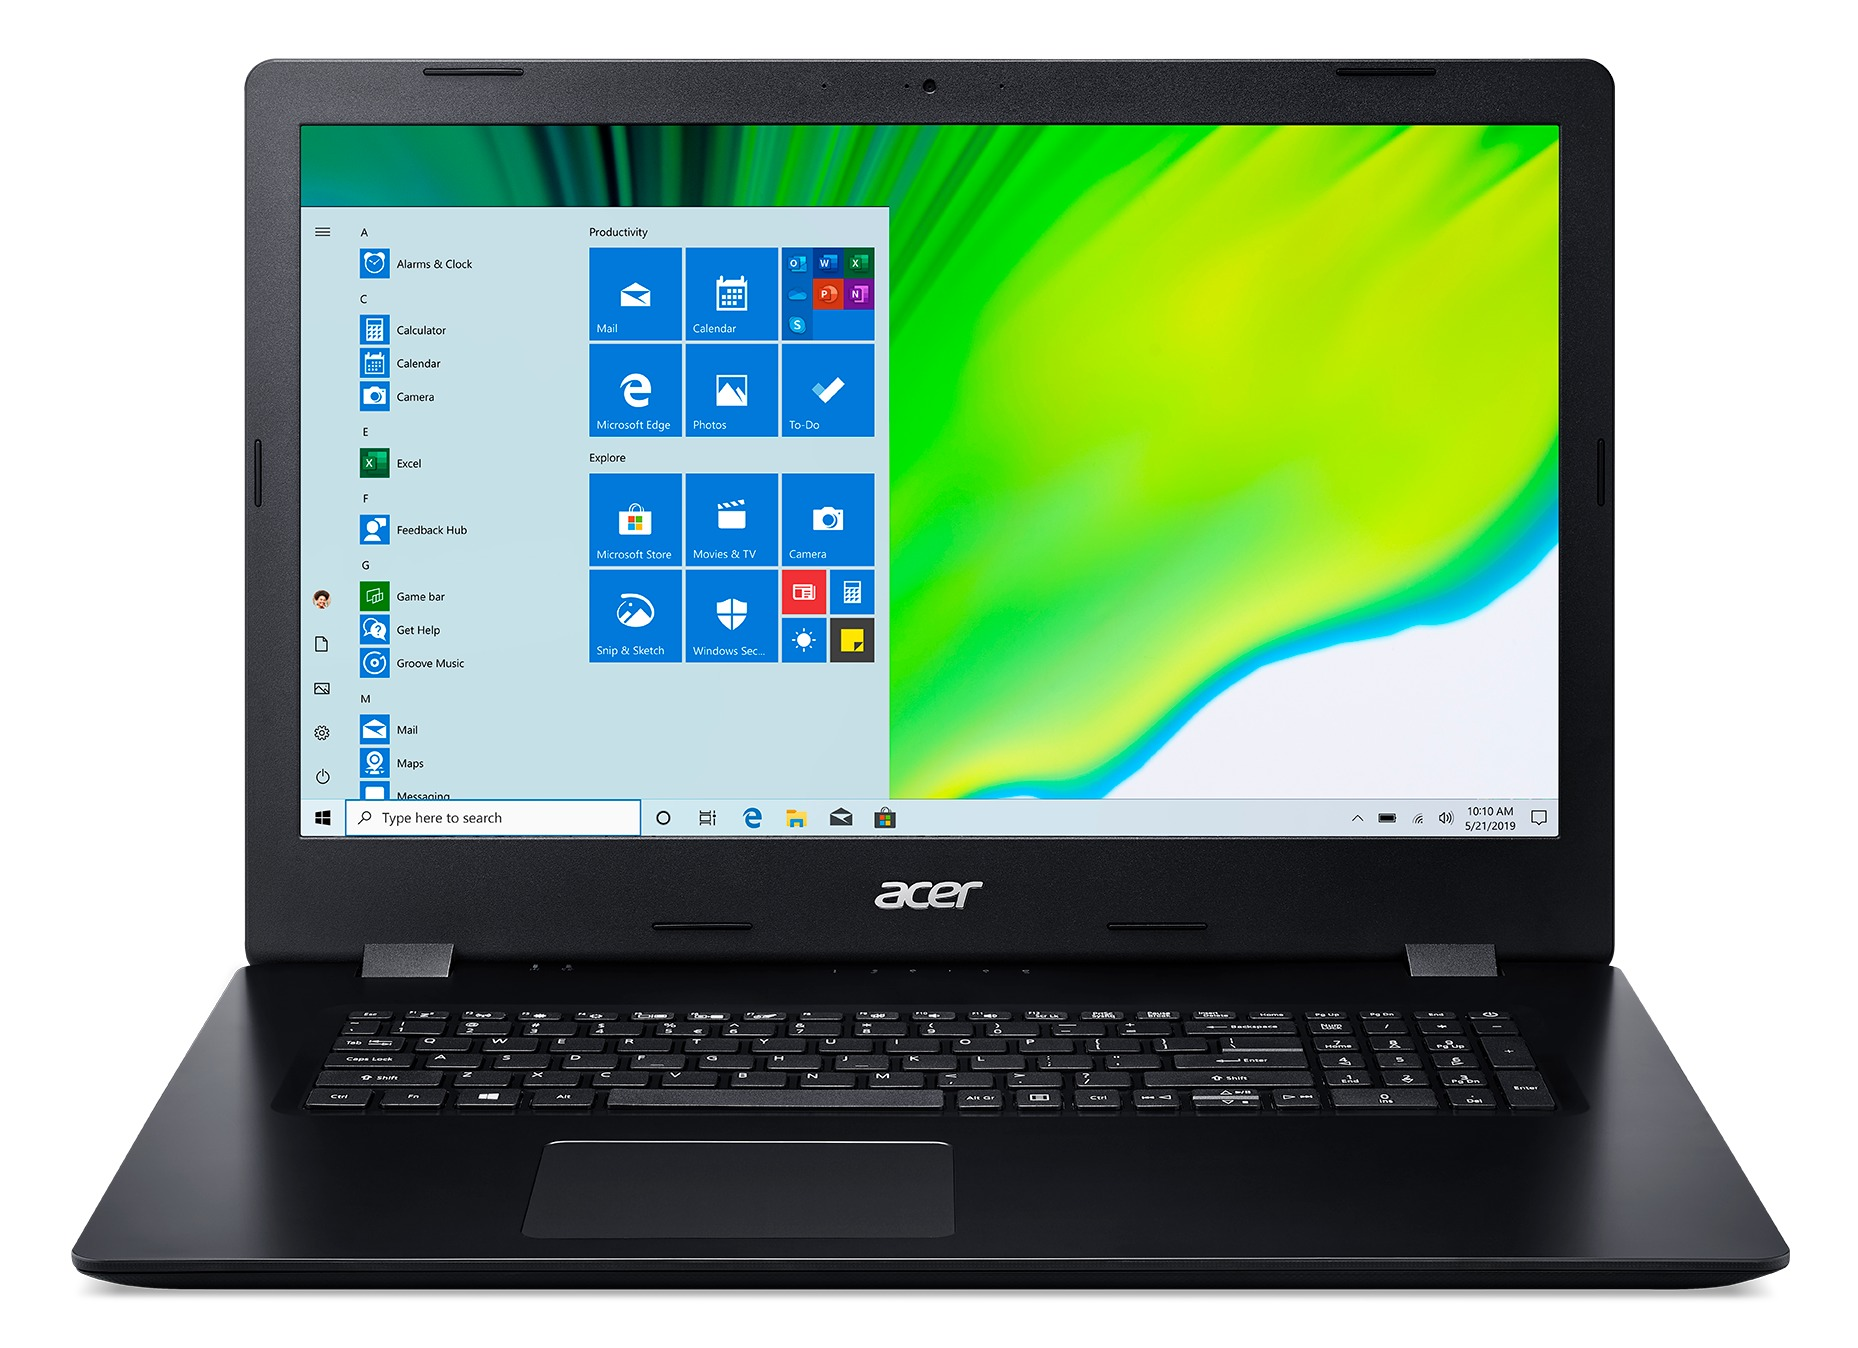 Acer Aspire 3 Pro A317-52-7367 Laptop - 17 Inch